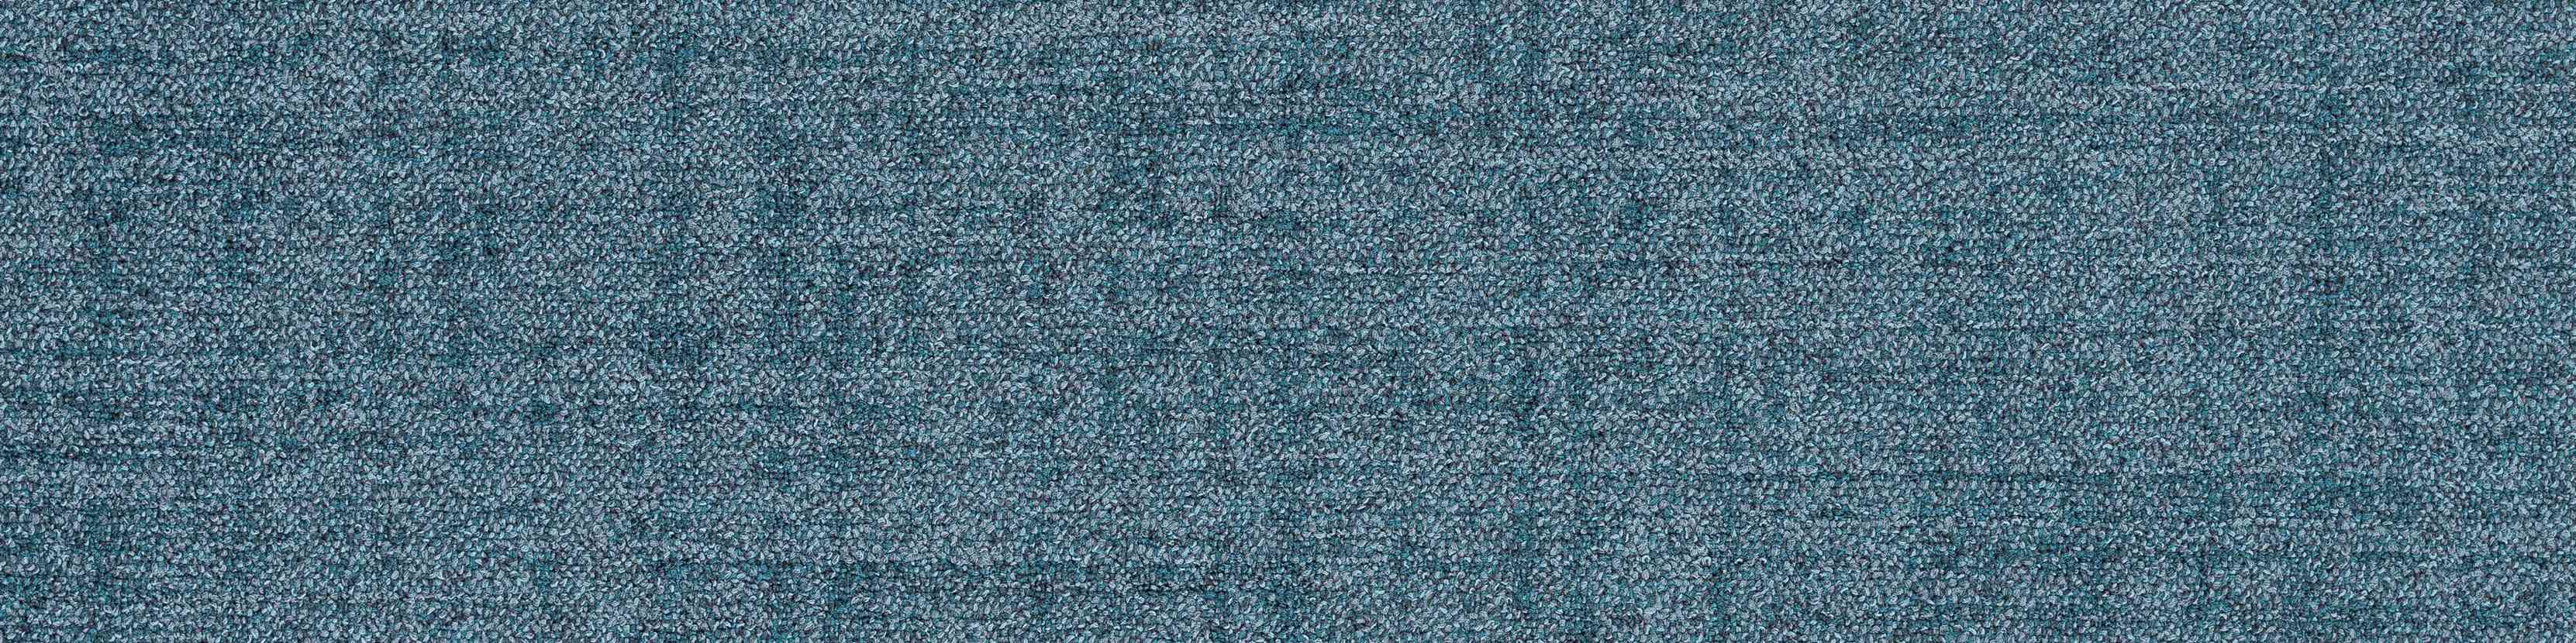 LIN11_BLUE Collection - Premierfloor Lino